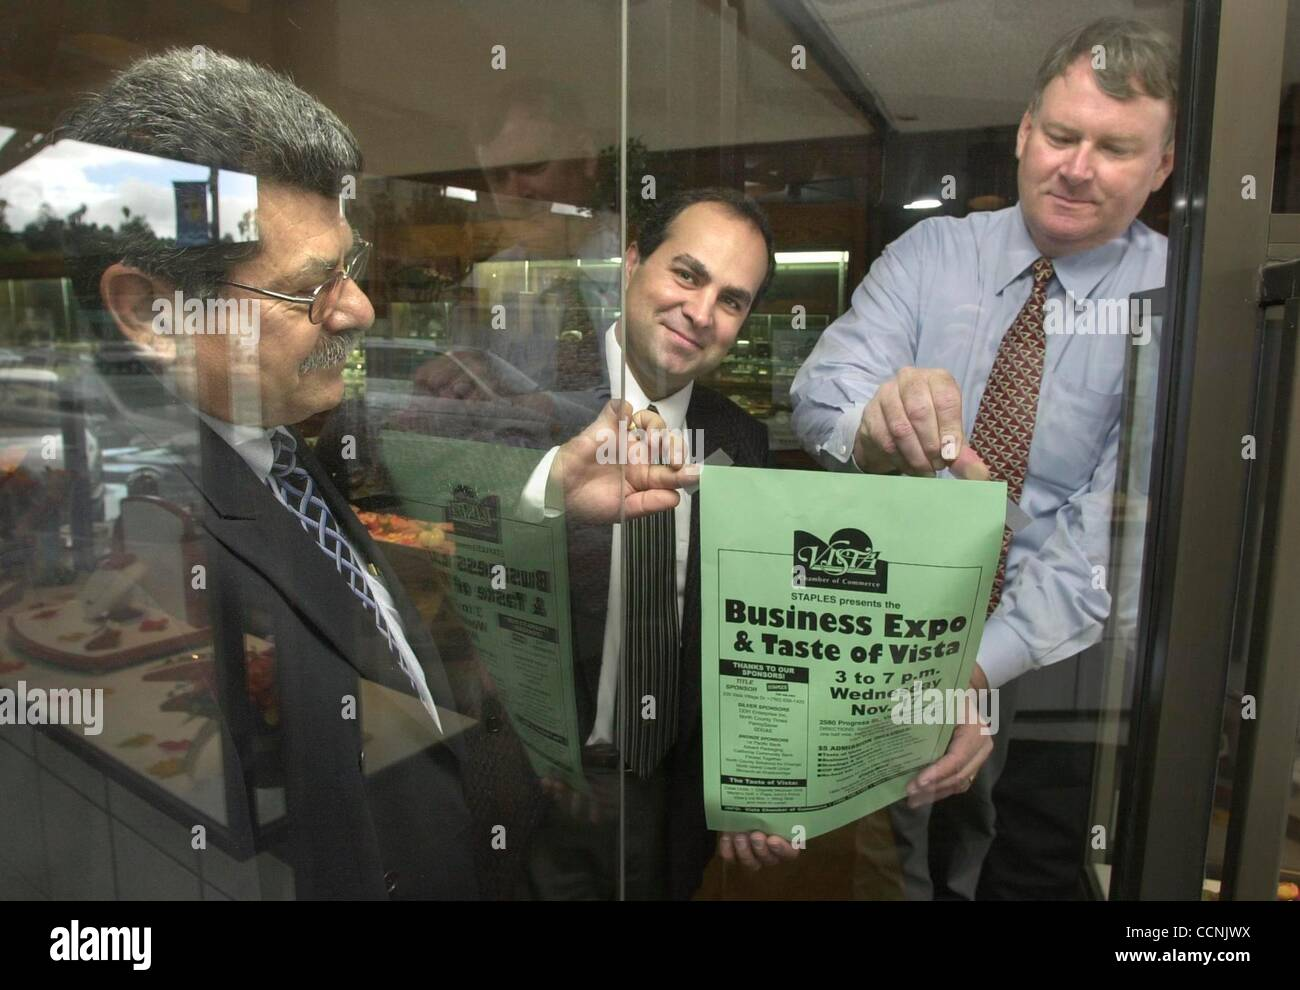 (Published 11/7/2004, N-5) Posting a sign promoting the Vista Chamber of Commerce's Business Expo & Taste - Stock Image